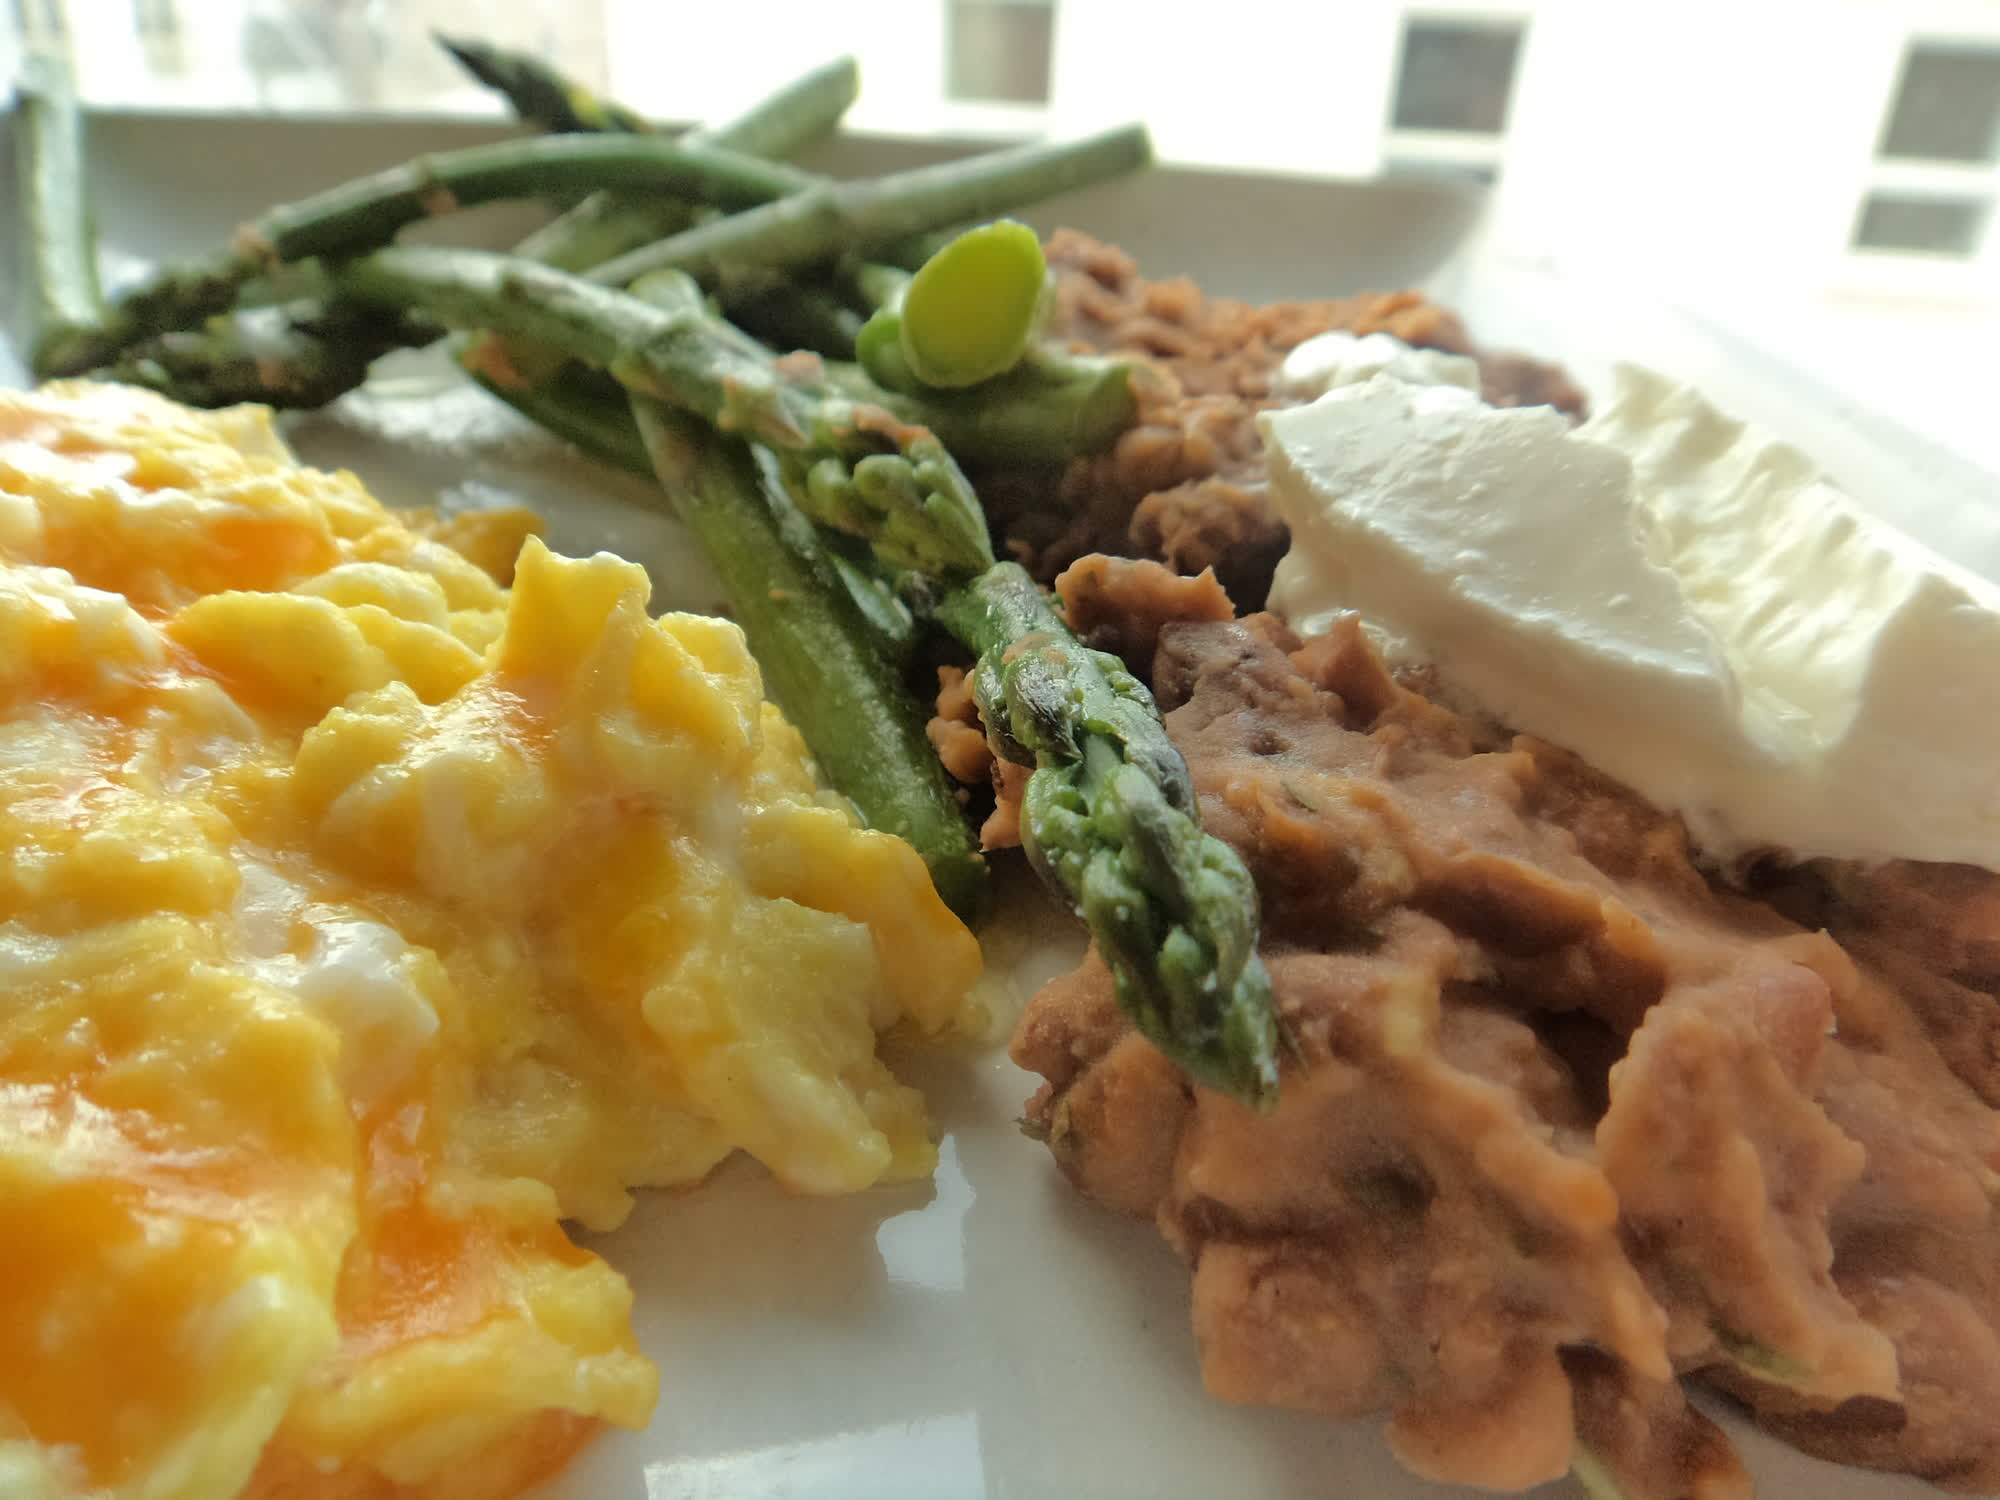 Cheesy scrambled eggs, asparagus and refried beans.